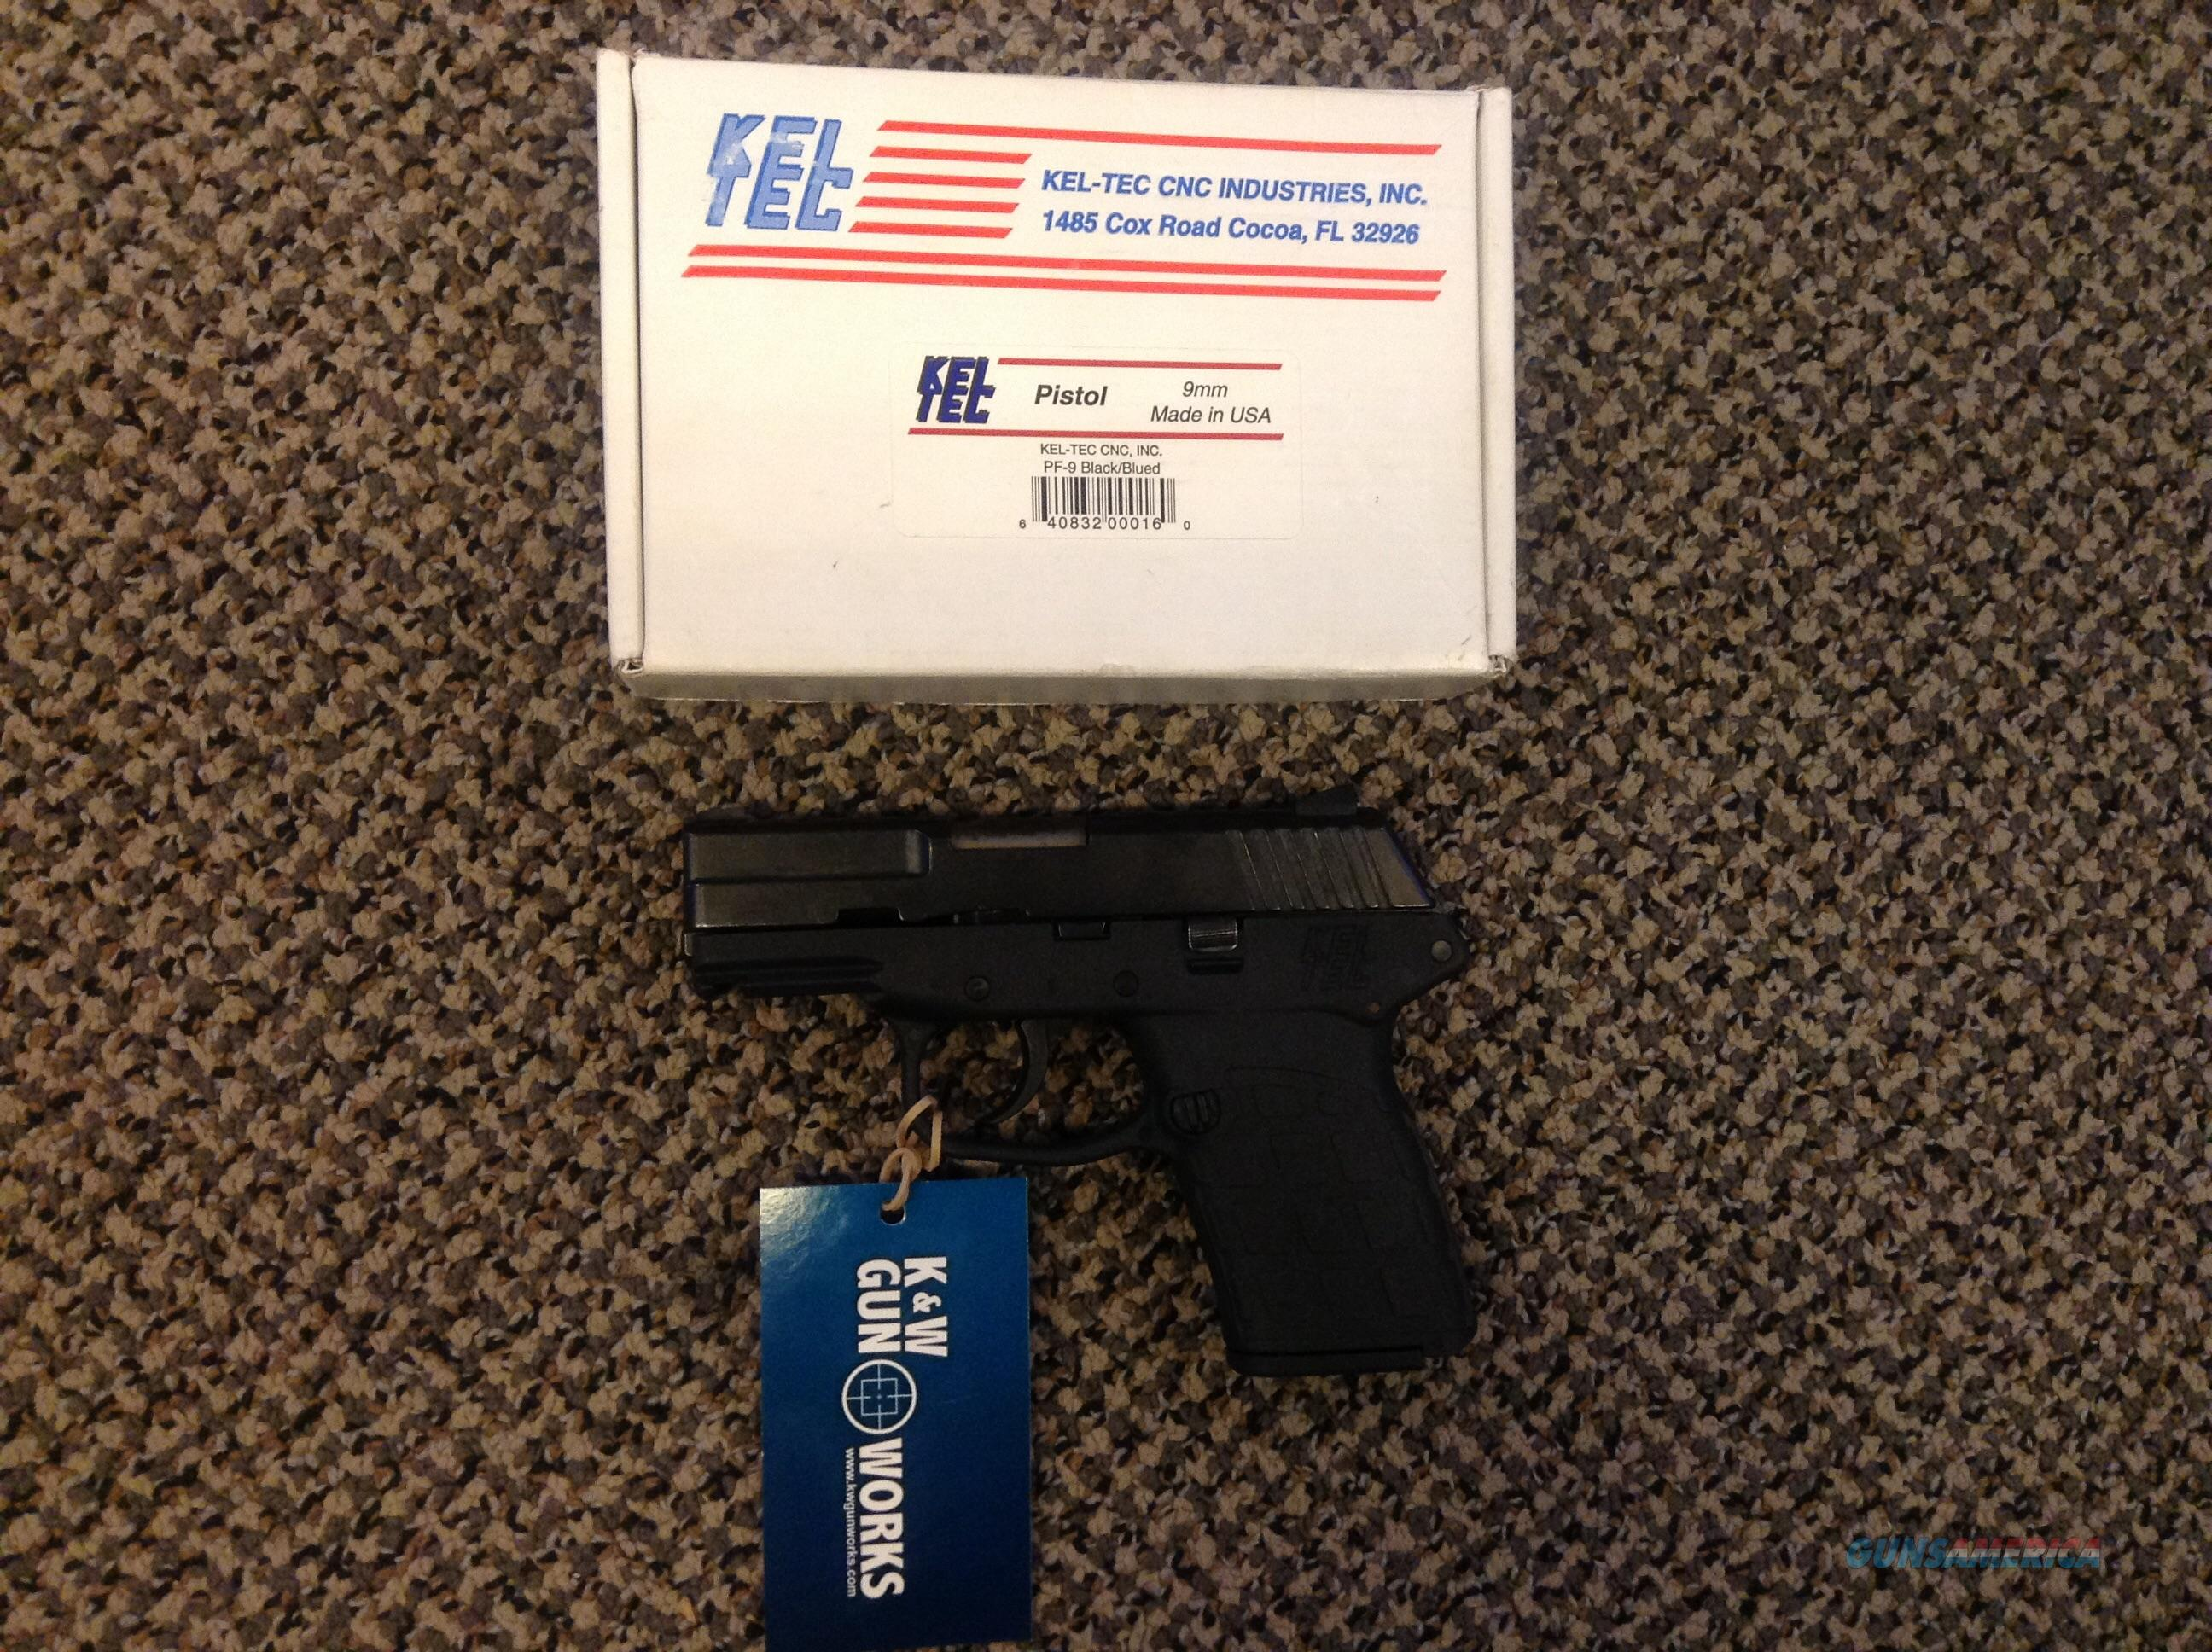 KEL-TEC PF9 9MM TWO MAGAZINES BOX AND PAPERS  Guns > Pistols > Kel-Tec Pistols > Pocket Pistol Type